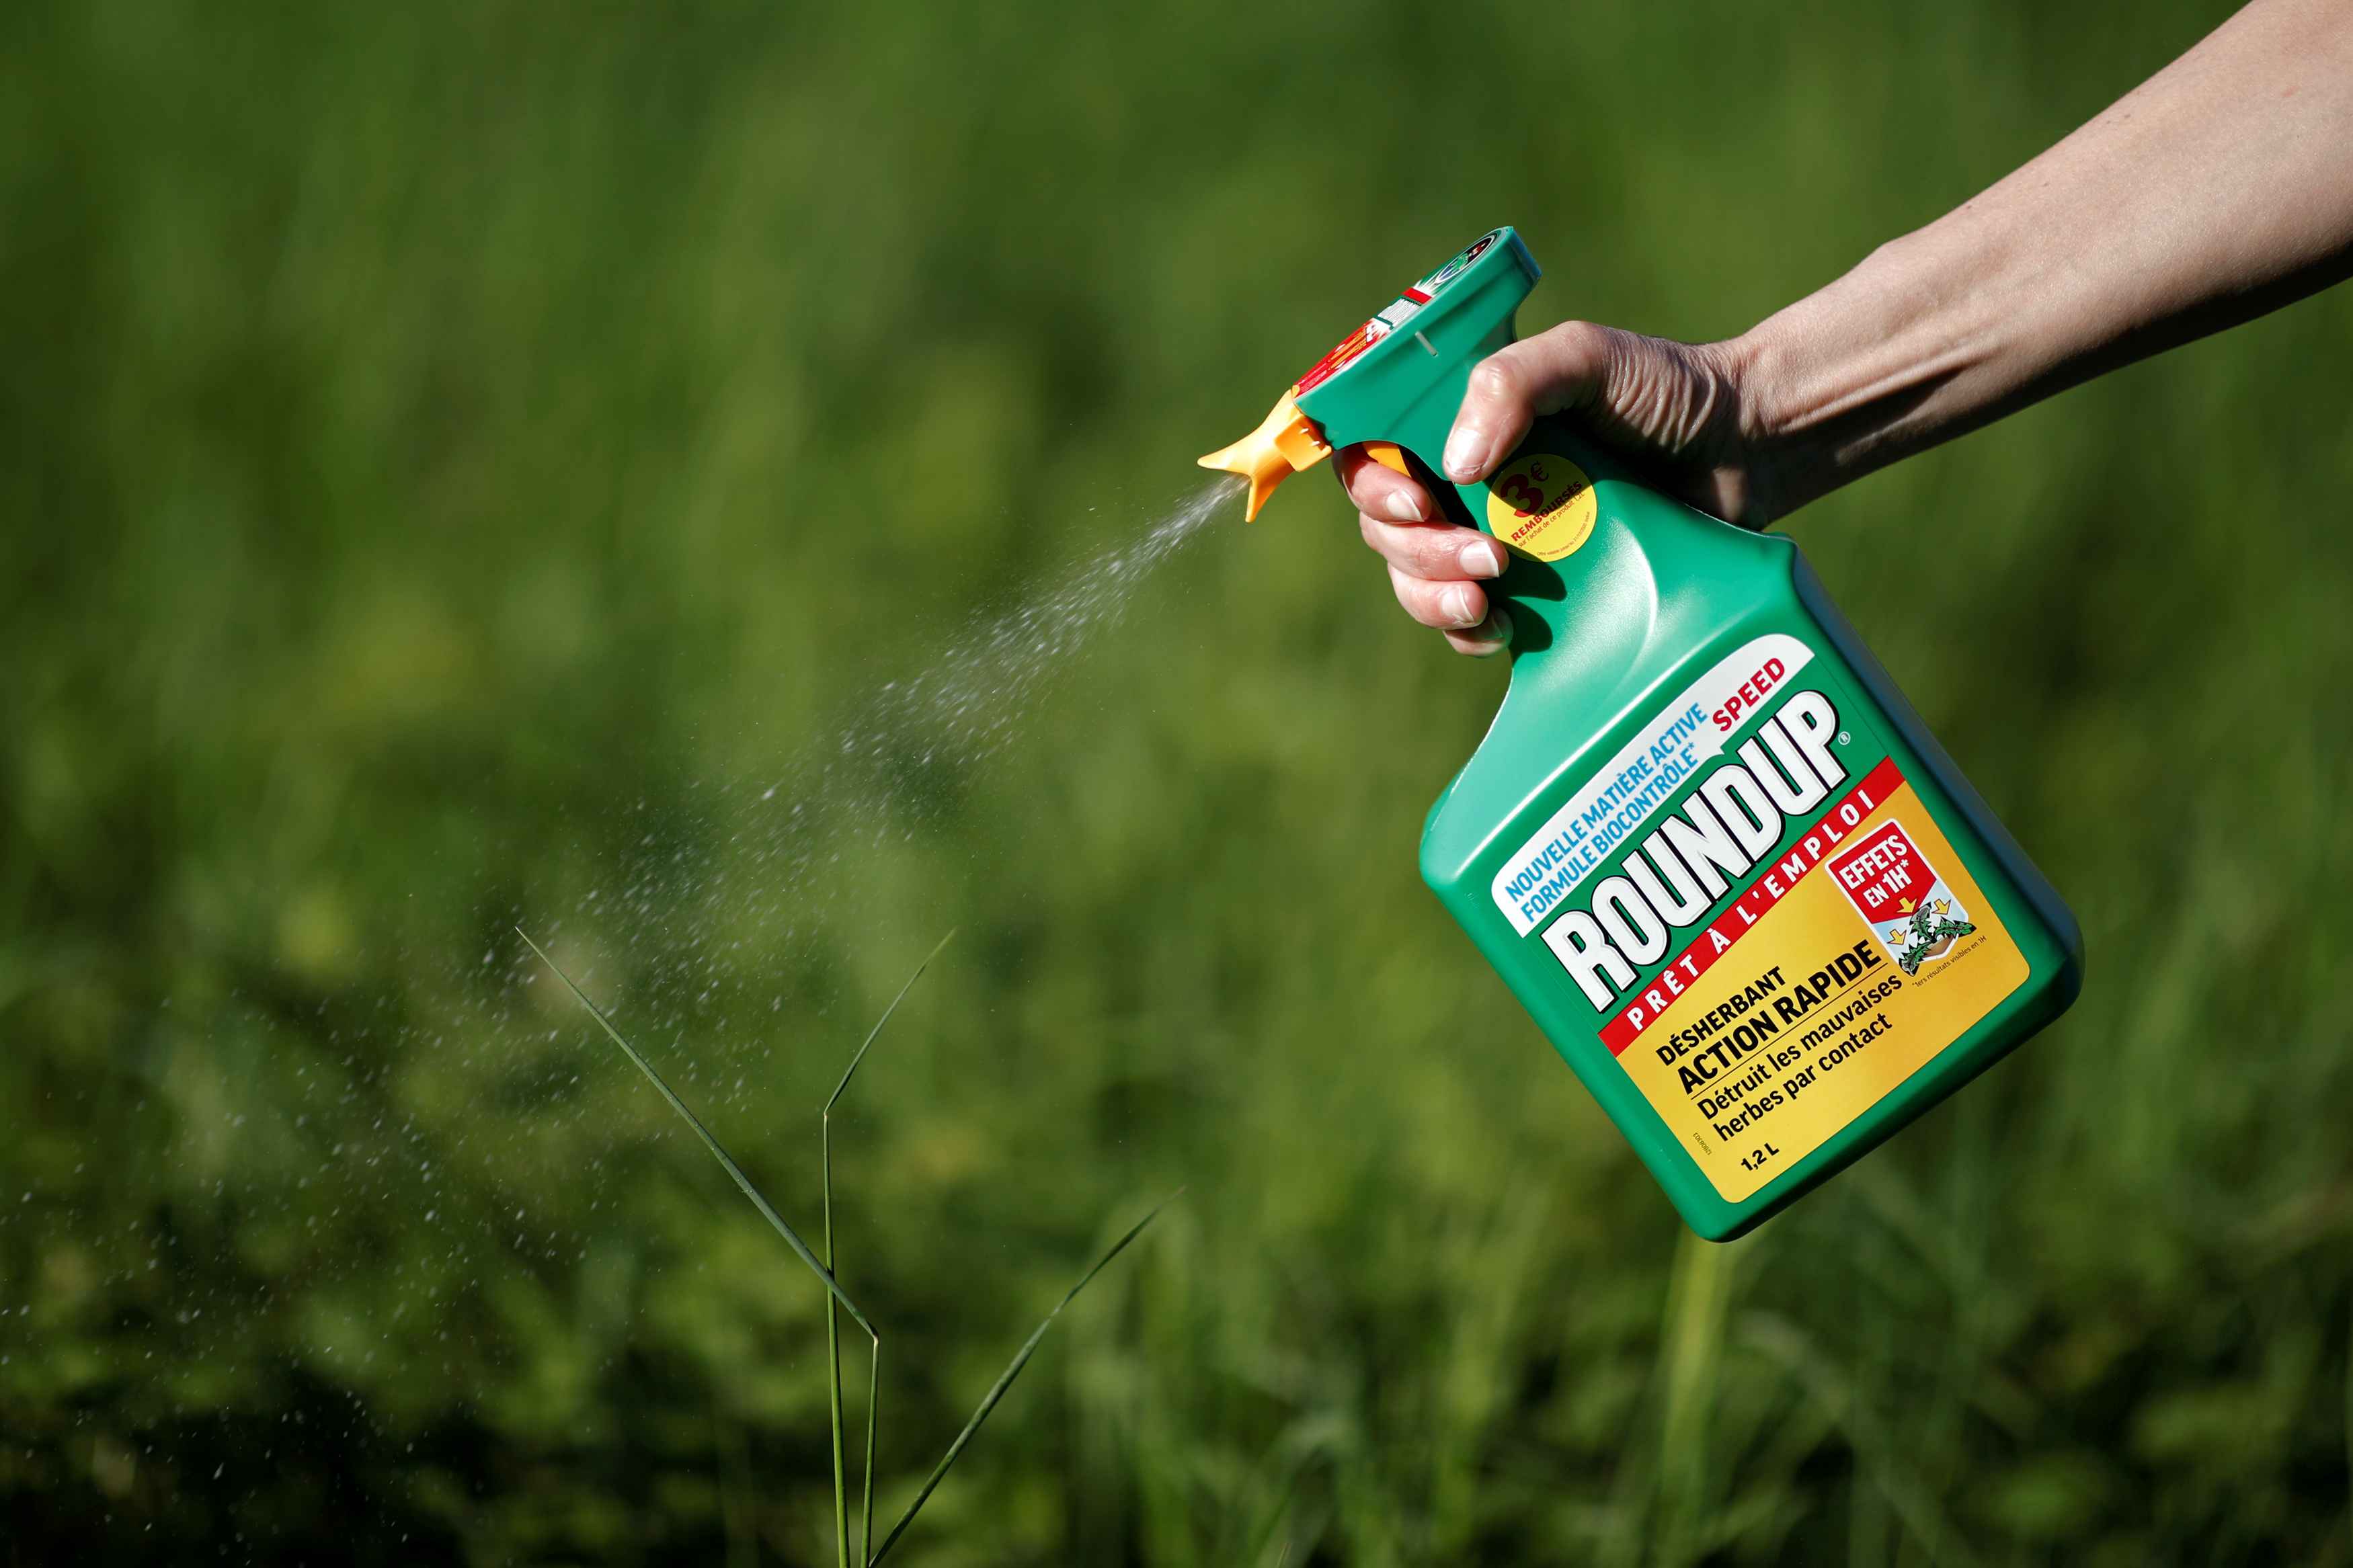 A woman uses a Monsanto's Roundup weedkiller spray without glyphosate in a garden in Ercuis near Paris, France, May 6, 2018.